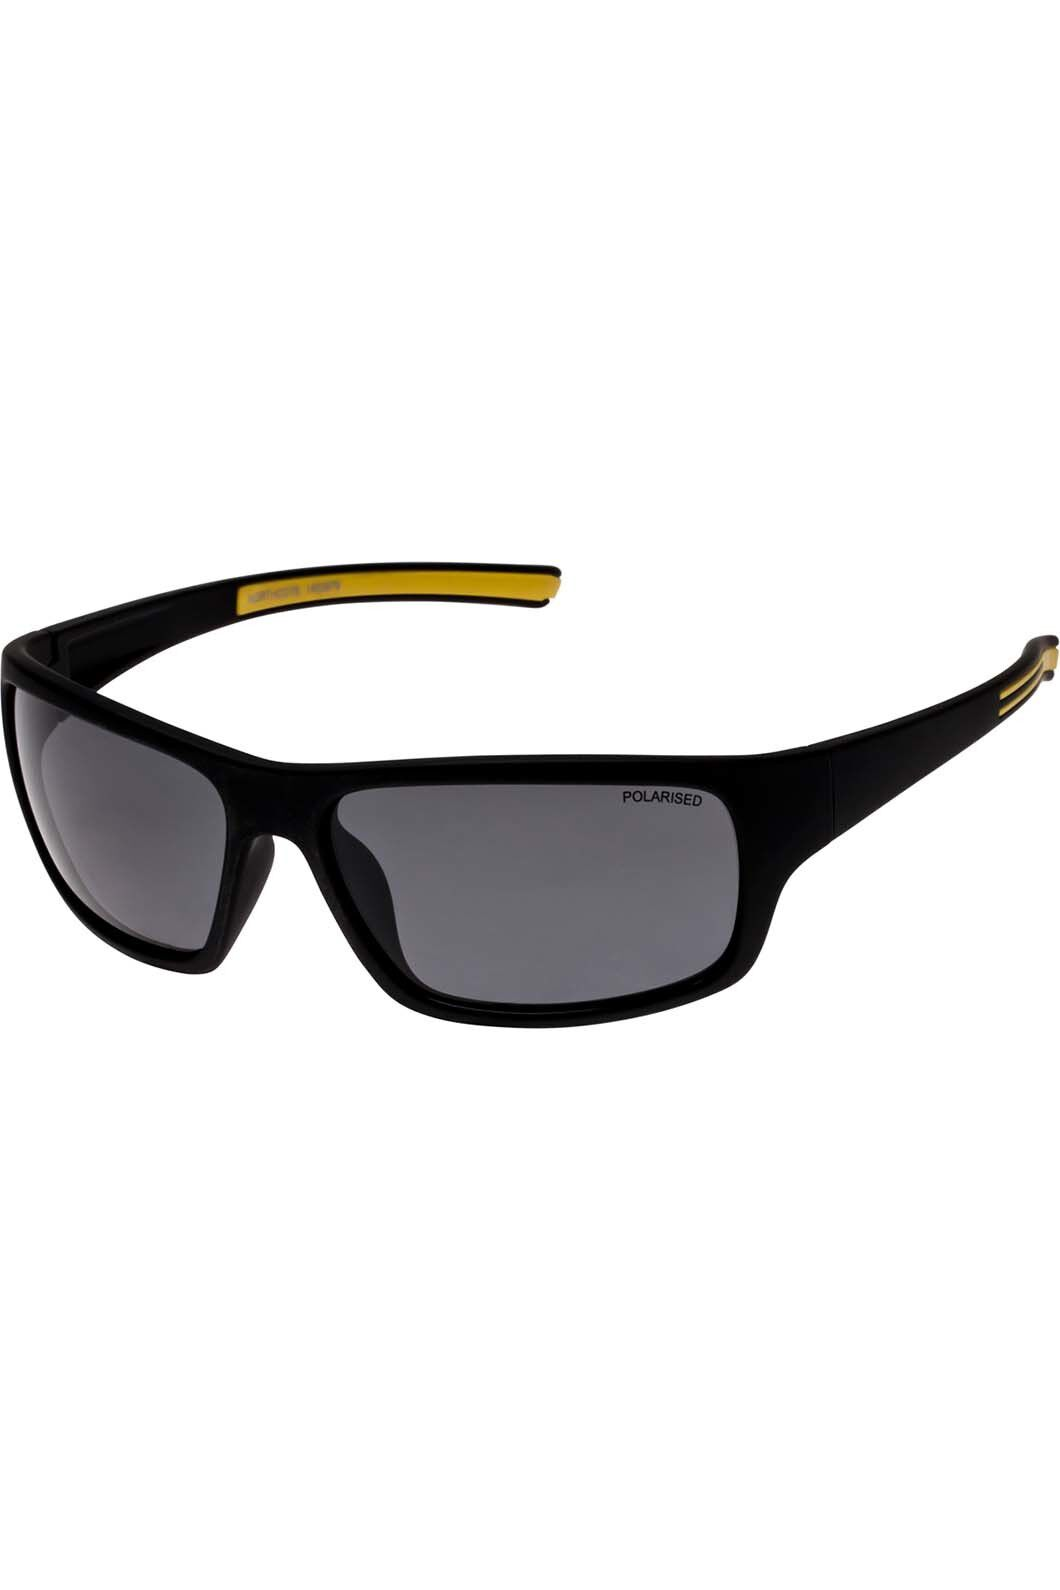 Cancer Council Men's Northcote Polarised Sunglasses, Black, hi-res